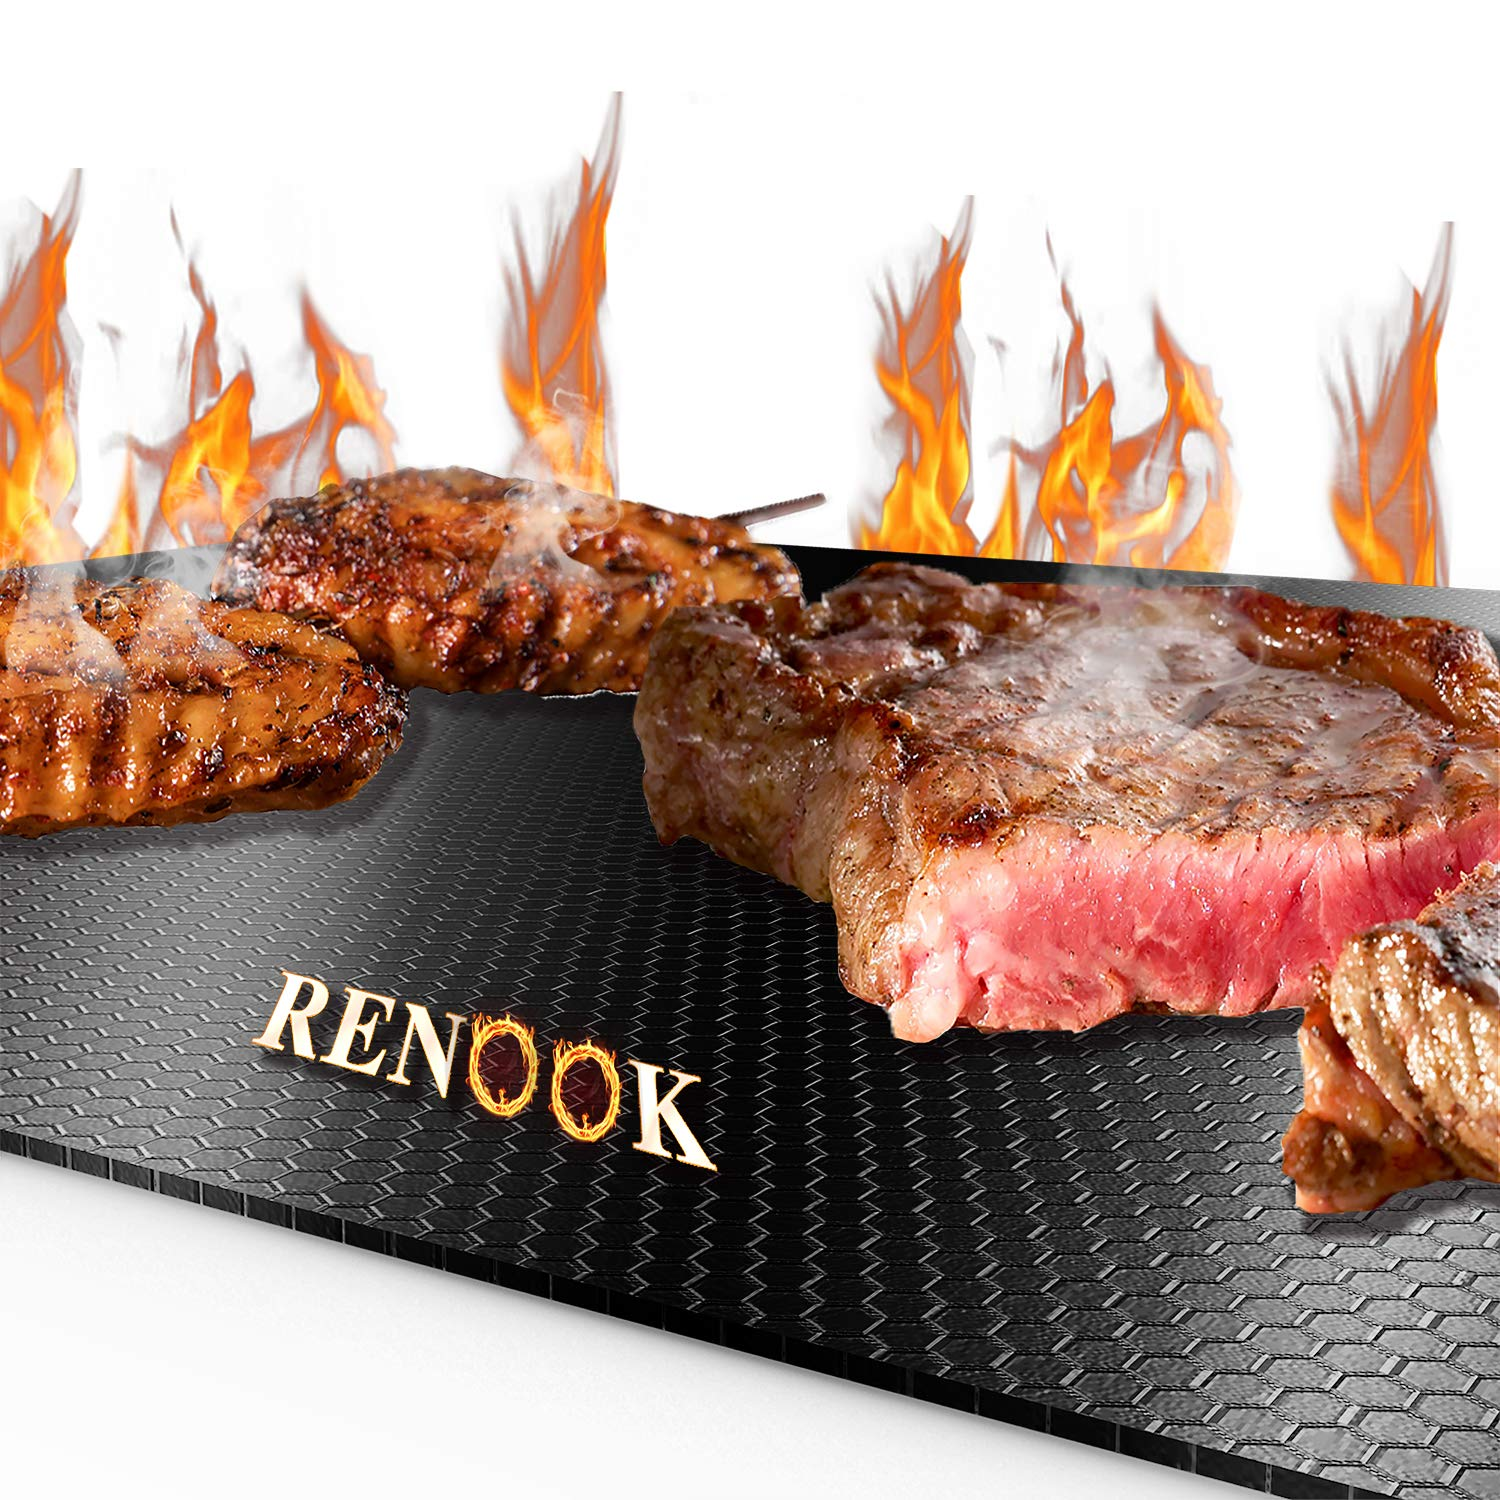 RENOOK Grill Mat Ultimate XL, Thickened 0.4mm in Thickness, Heavy Duty 600 Degree Non-Stick Grilling Sheets, Set of 2 BBQ Grill mats, 20 x 17-Inch